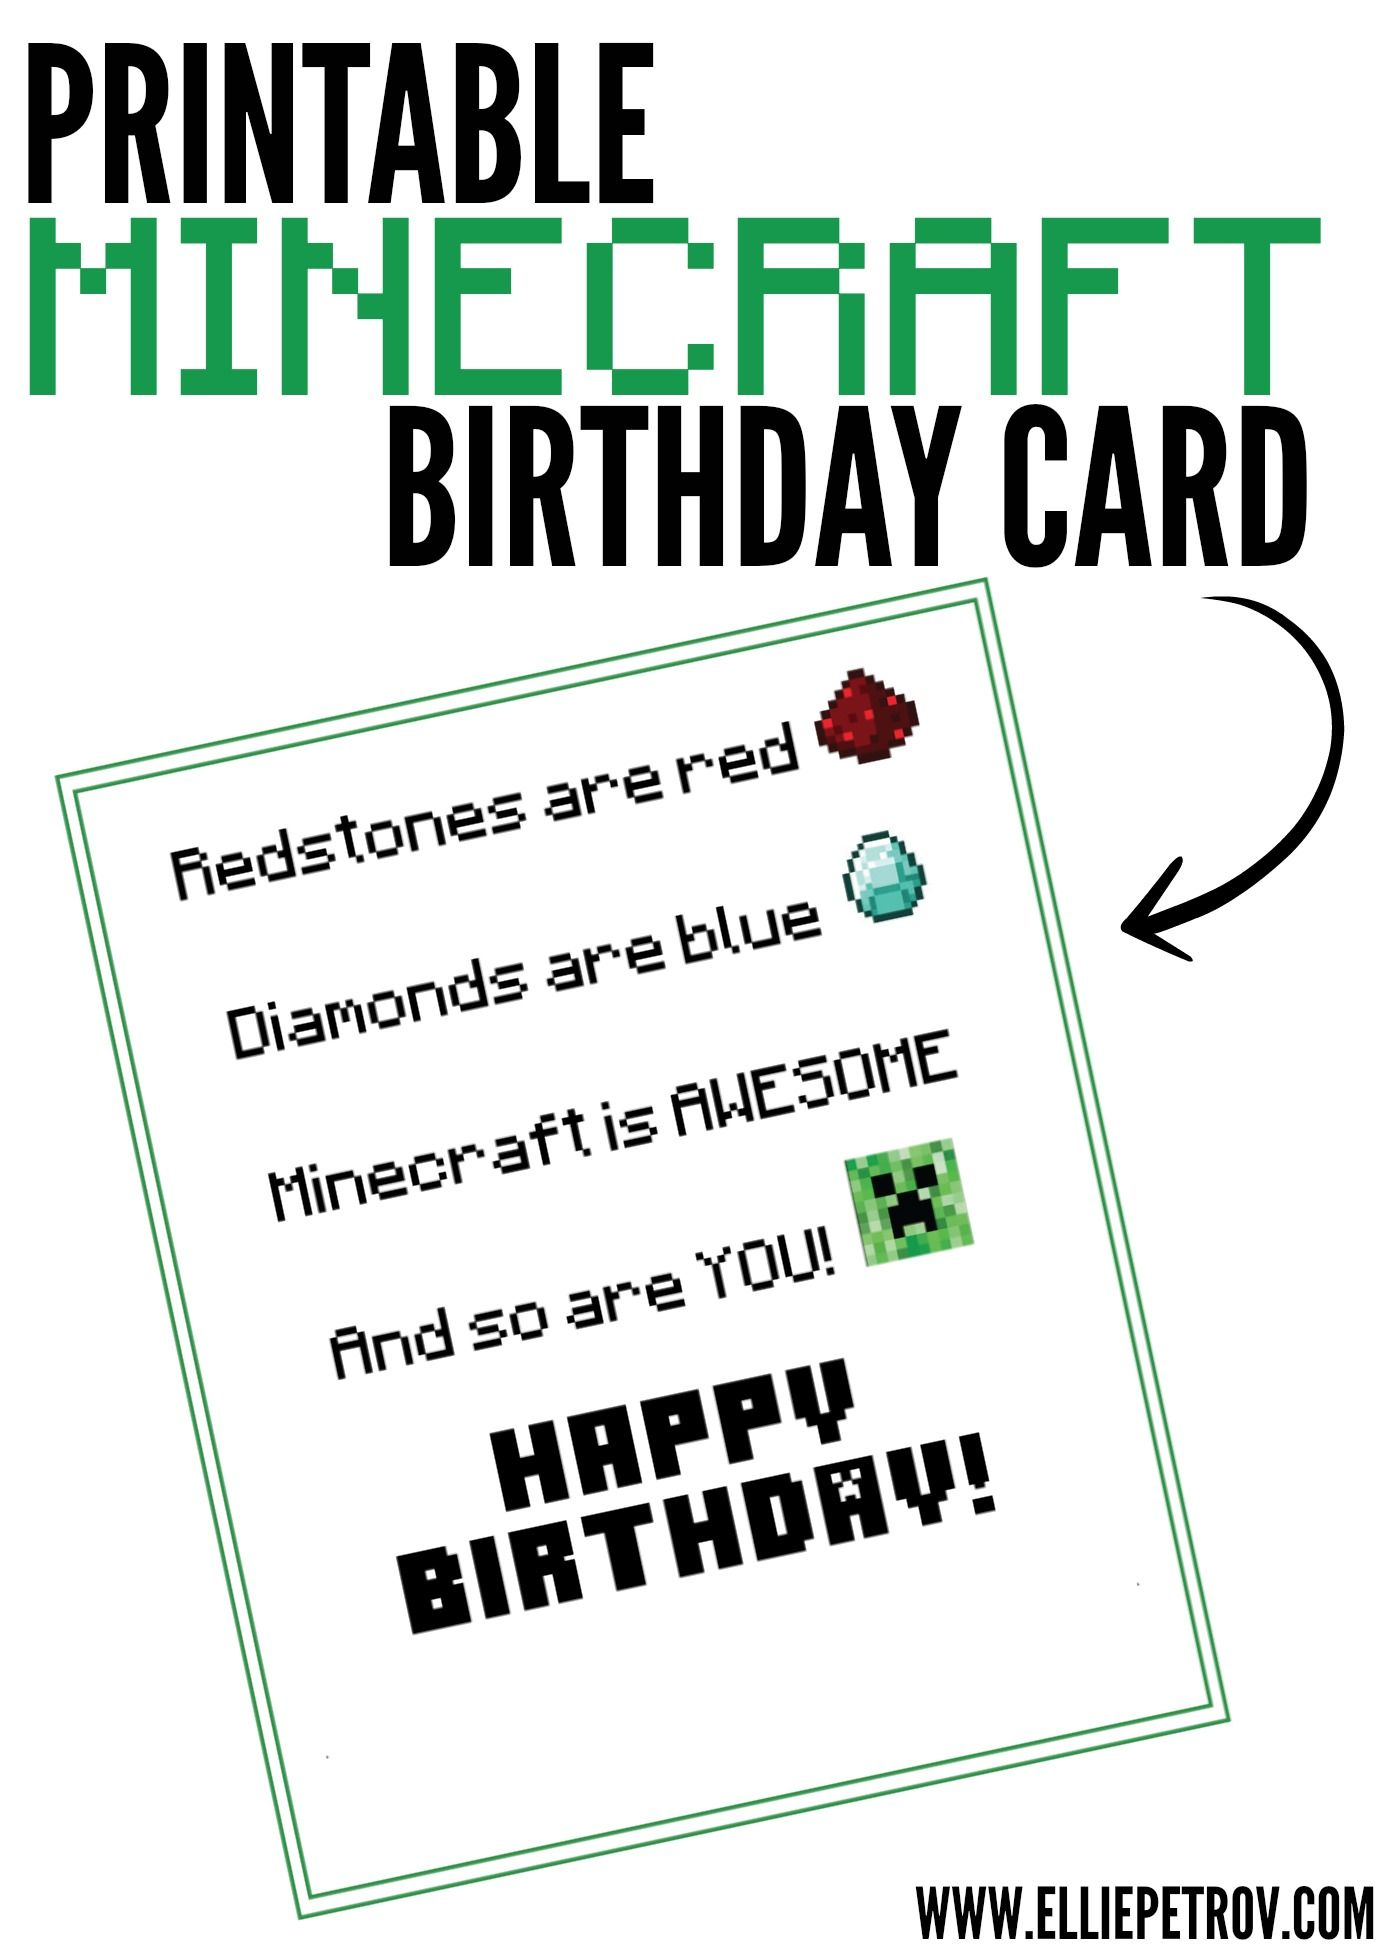 Birthday Happy Minecraft Card Printable